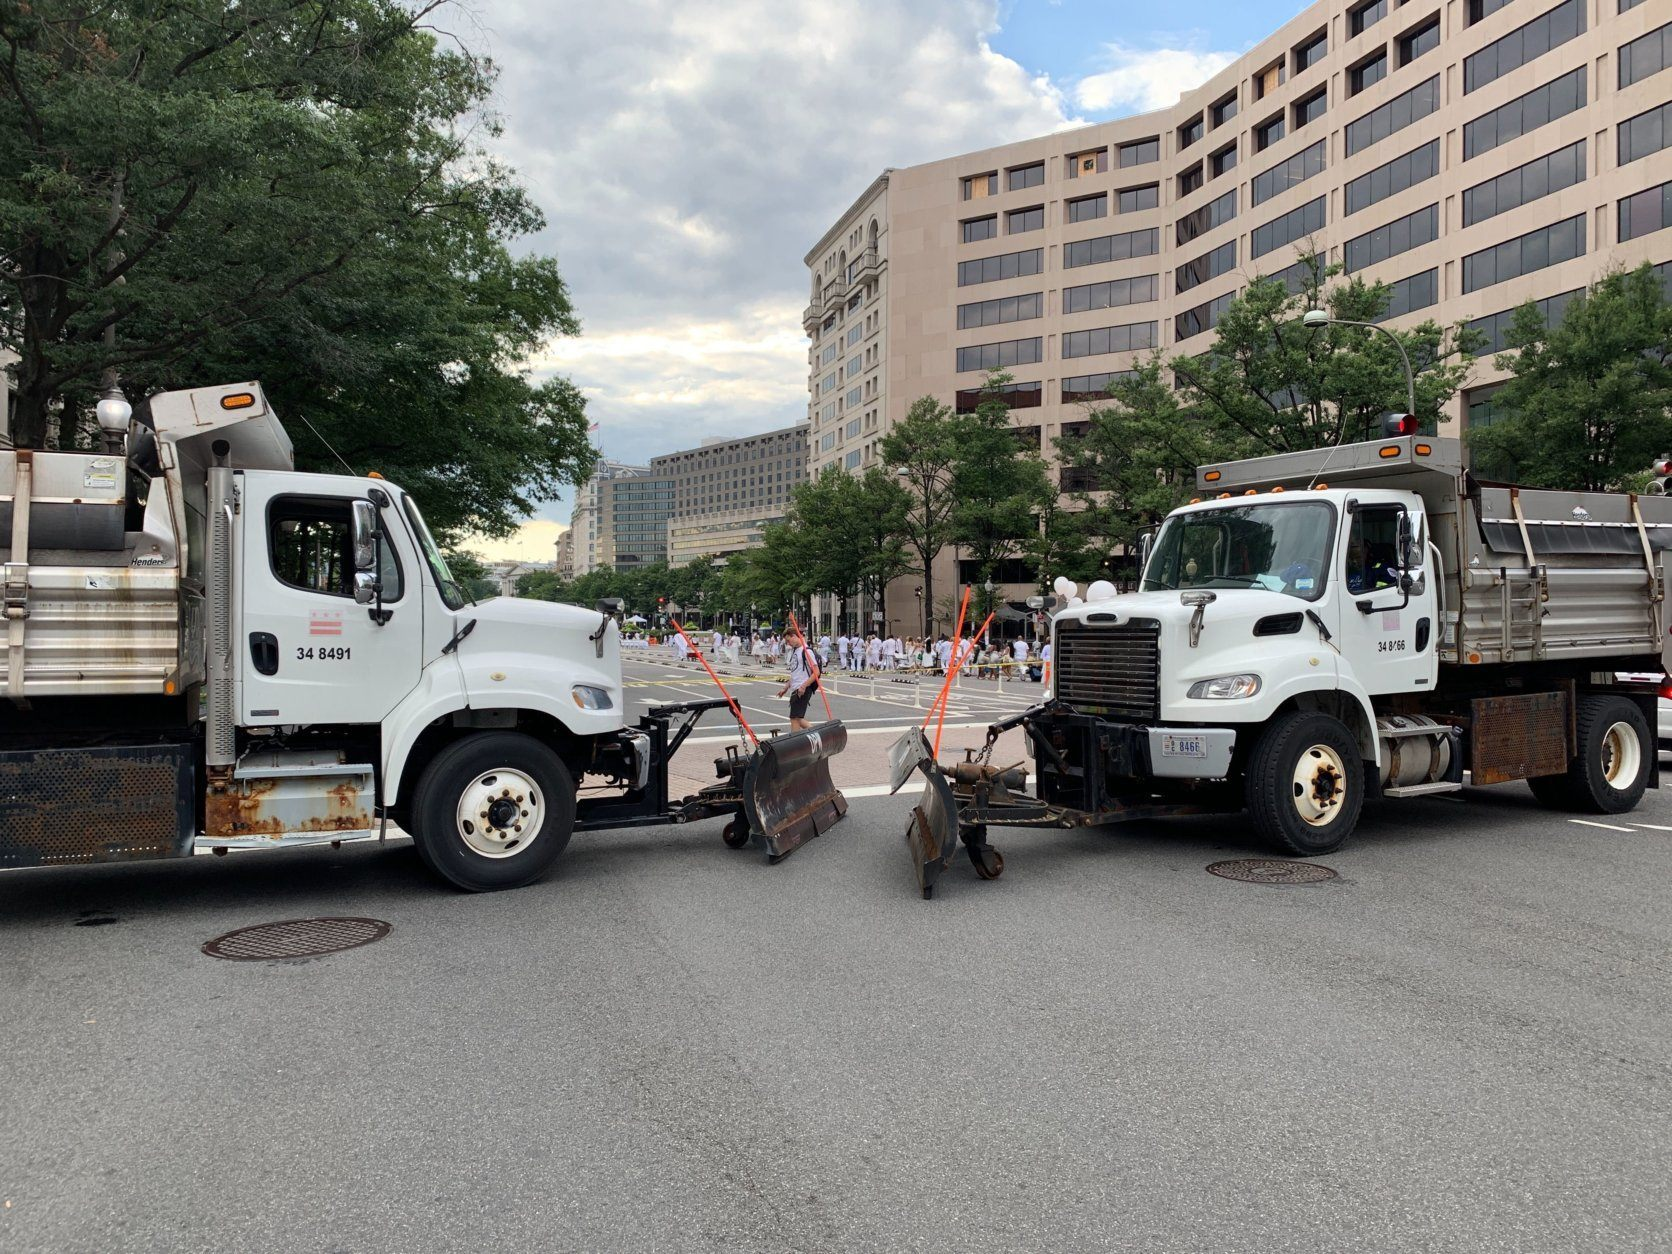 <p>Davis, the event&#8217;s promoter, said security is an important consideration for an event that attracts thousands of people to a contained area. But most of the revelers said they felt safe, and the security checkpoints and massive road-salting trucks more familiar with Pennsylvania Avenue&#8217;s cross streets in January were an understandable and minor inconvenience.</p>